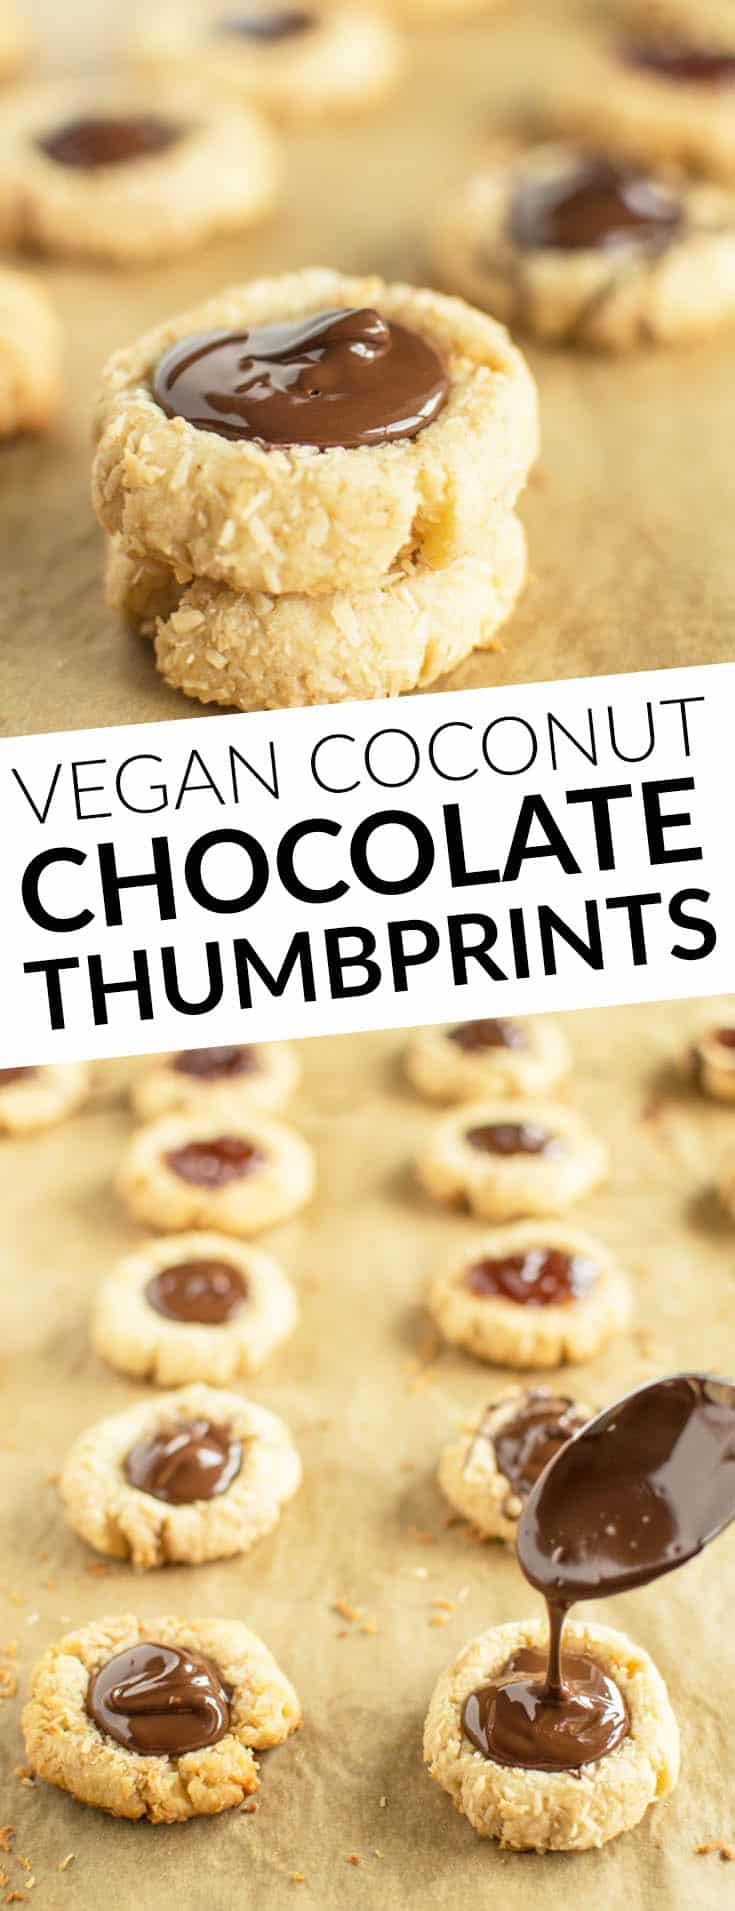 Buttery Vegan Coconut Chocolate Thumbprints are perfect for any occasion! by Lisa Lin | @healthynibs